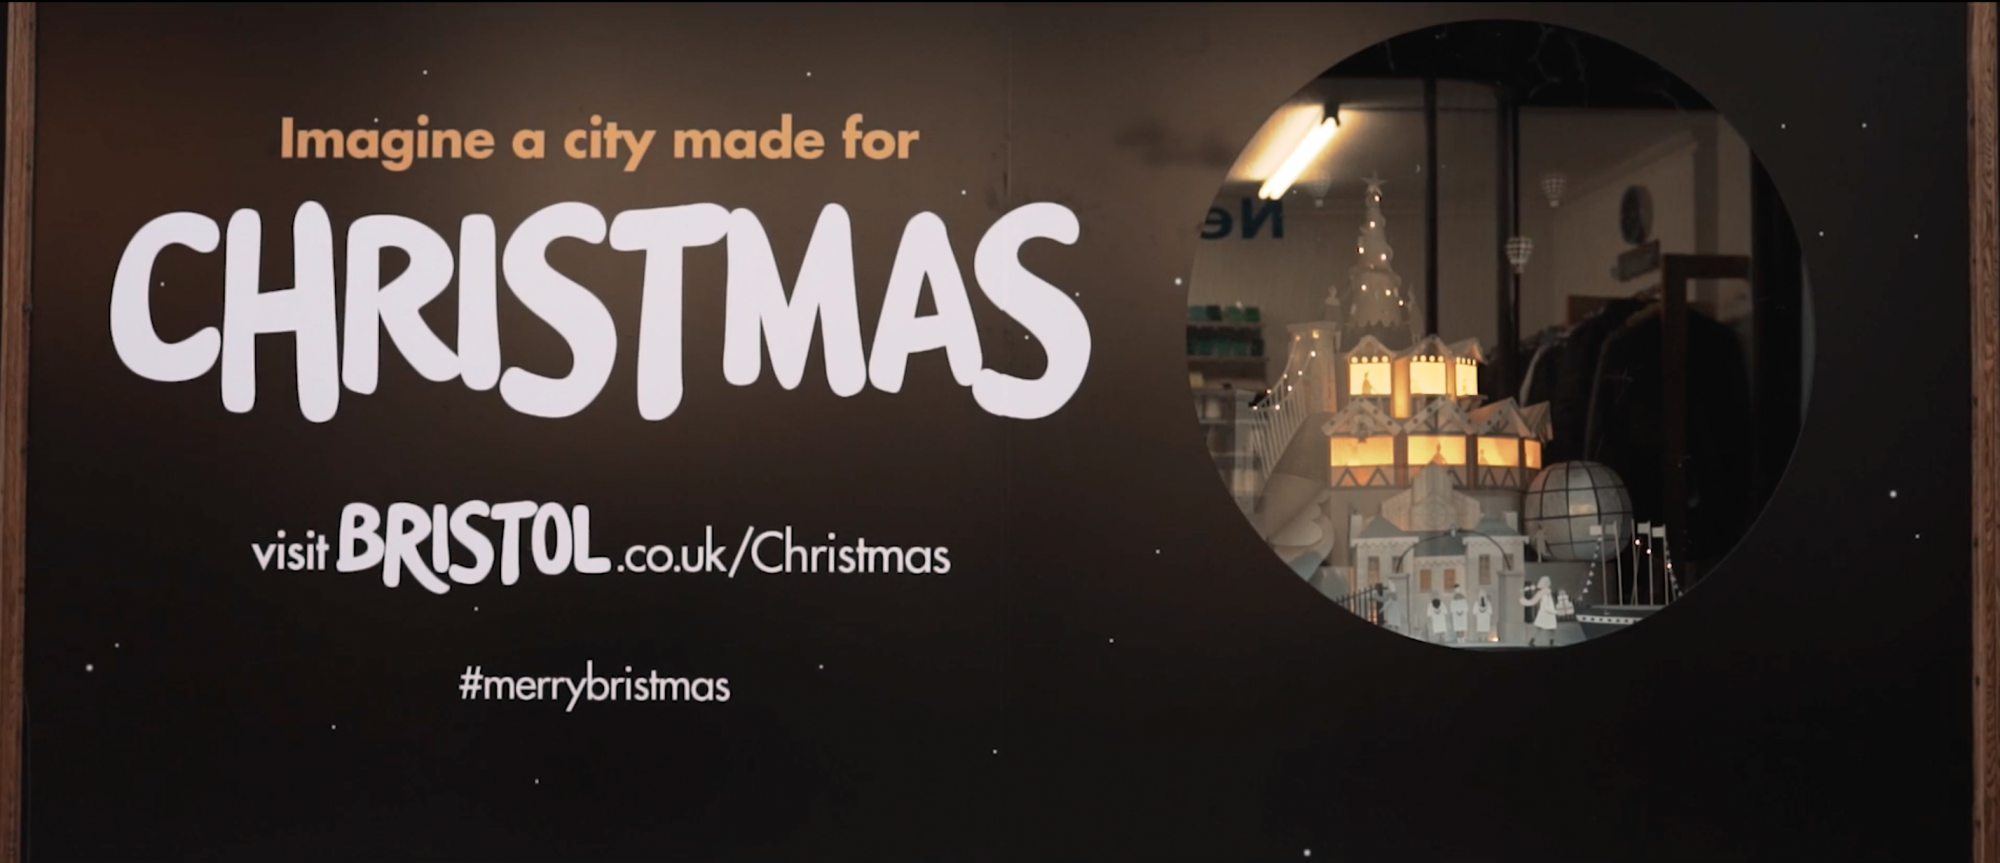 Sam Pierpoint Creates Magical Campaign Promoting Christmas in Bristol Crafted in Paper - Window Display